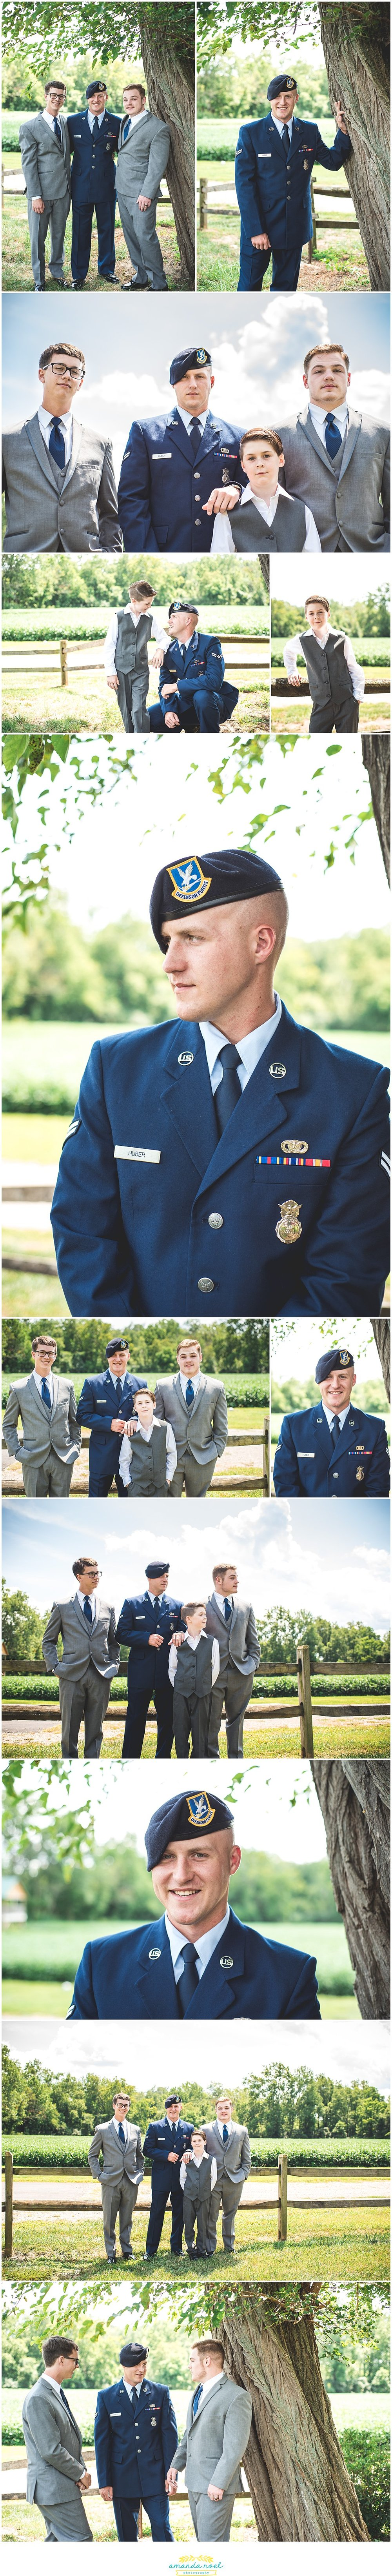 Springfield Ohio Wedding groom and groomsmen portrait